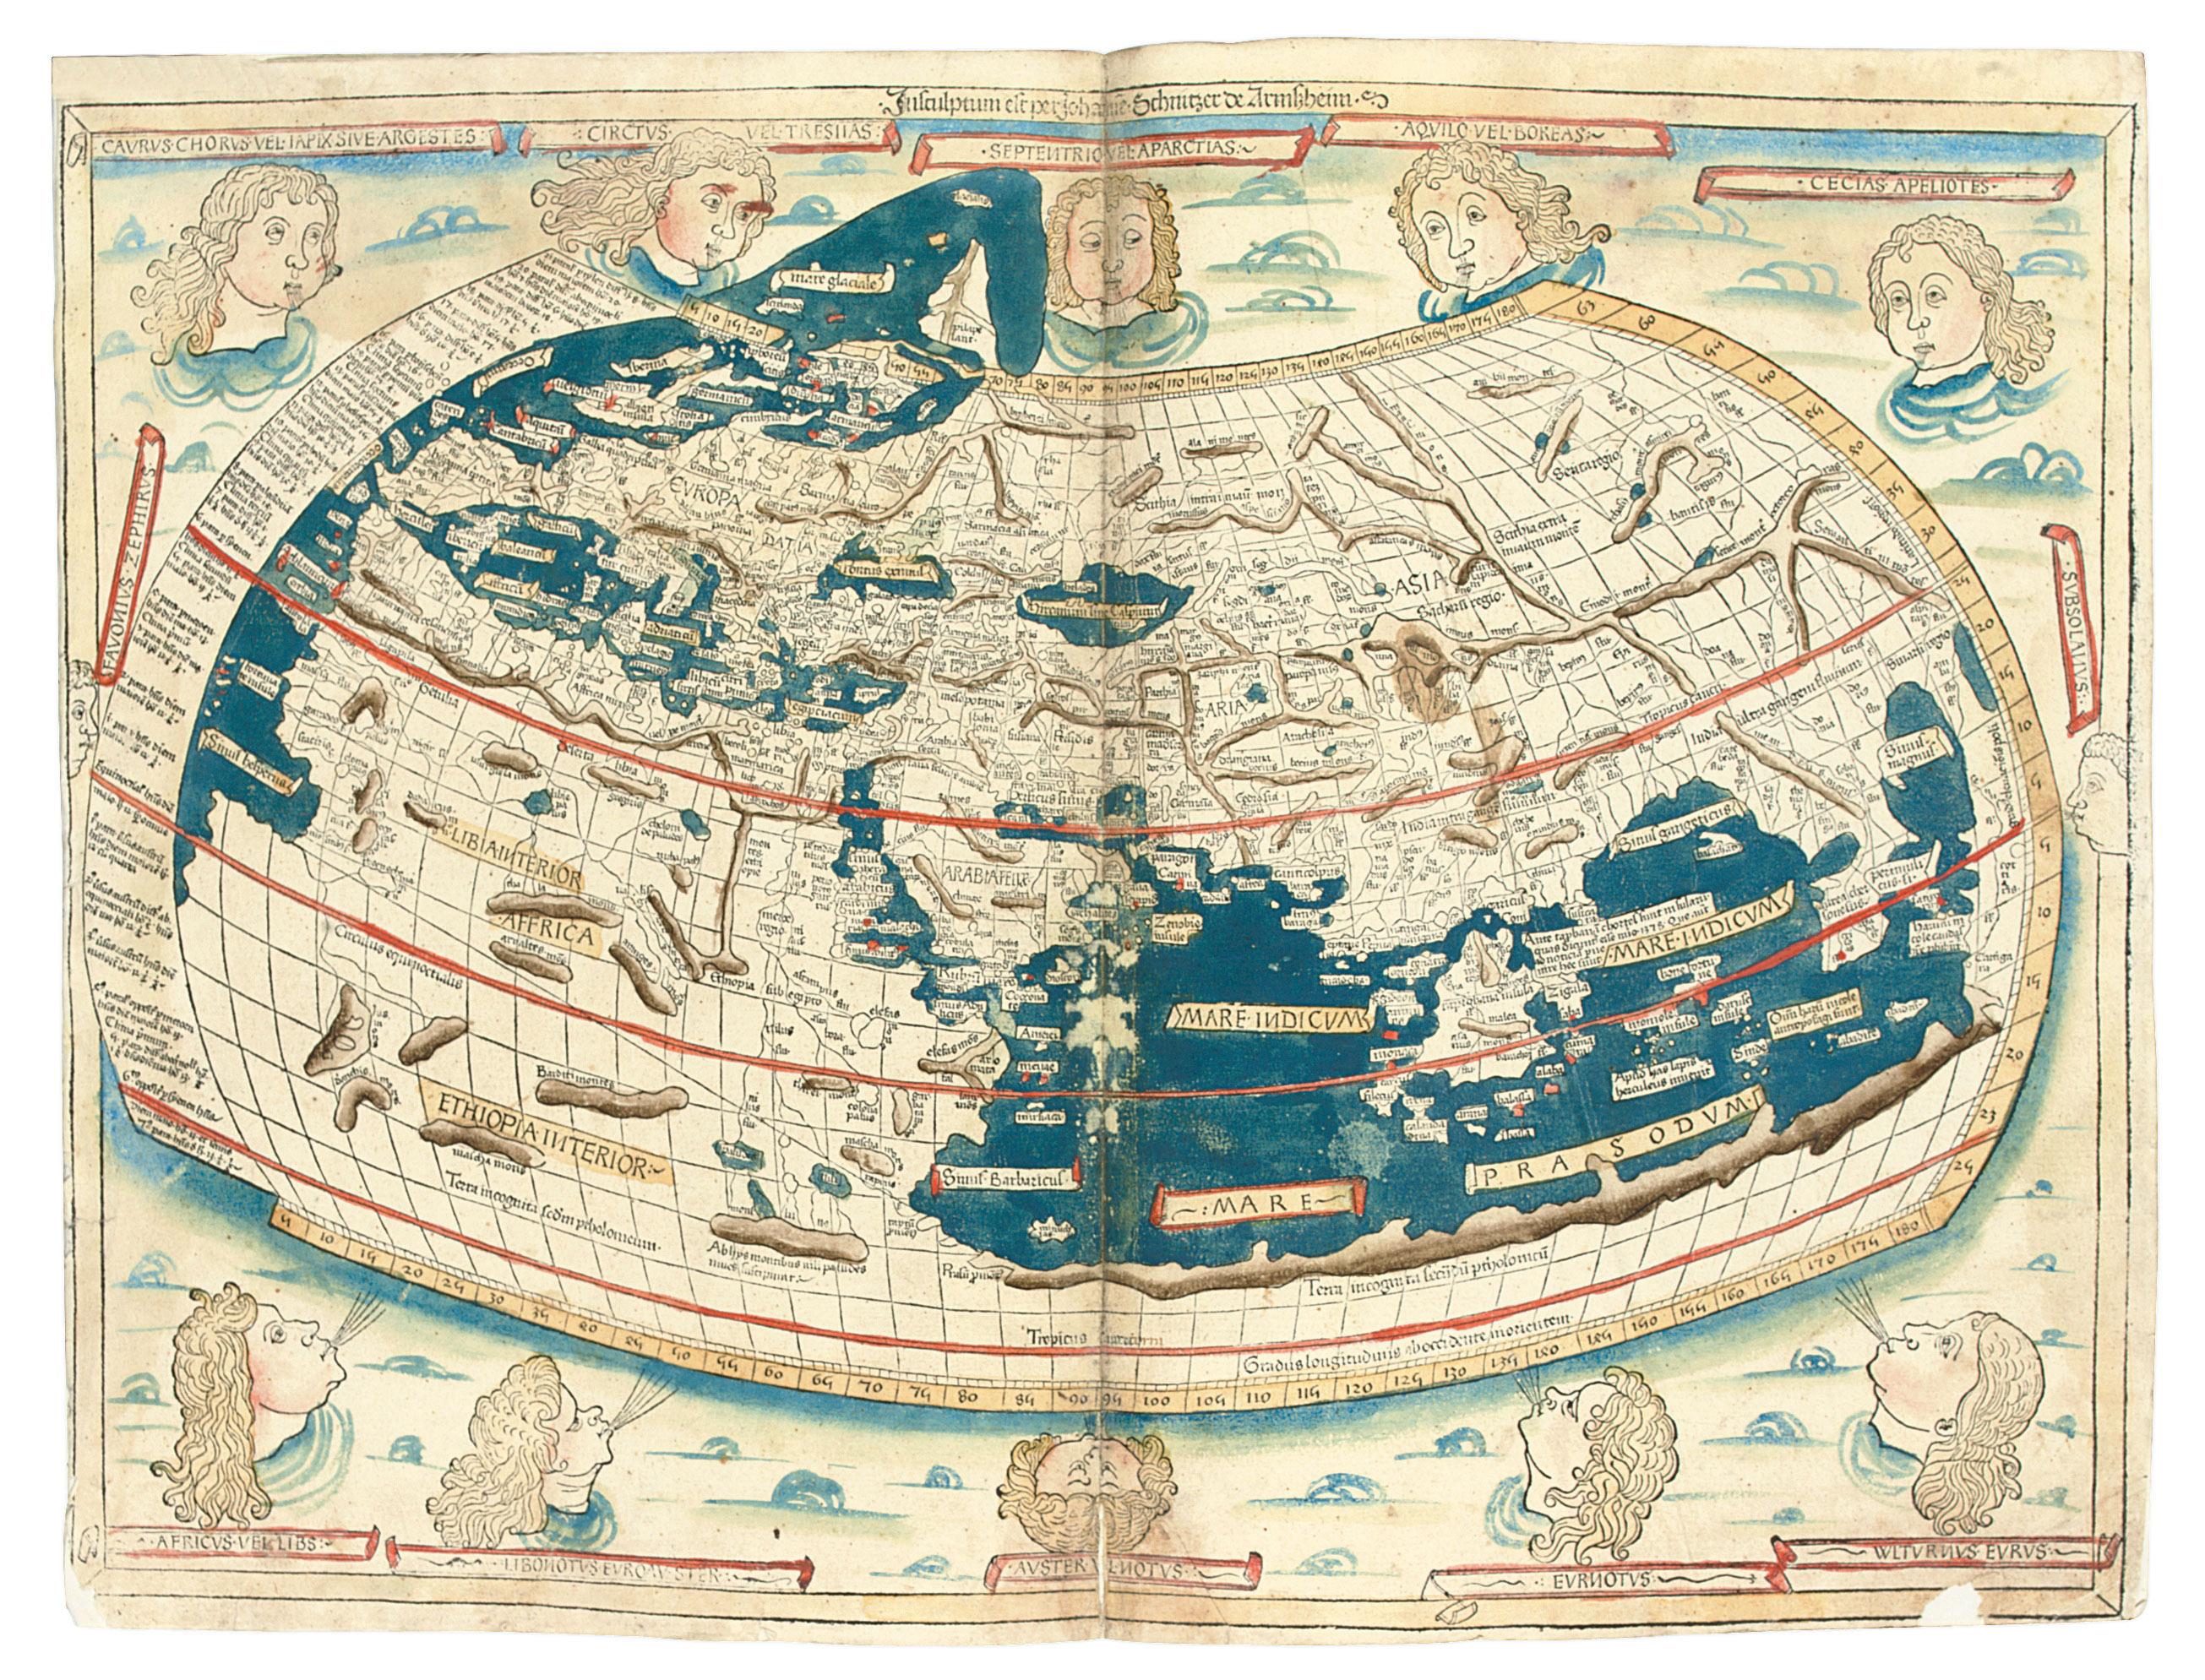 PTOLEMAEUS, Claudius (2nd century). Cosmographia. Translated from Greek into Latin by Jacobus Angelus (fl. early 15th century). Edited by Nicolaus Germanus (c.1420-c.1490). Ulm: Lienhart Holle, 16 July 1482.